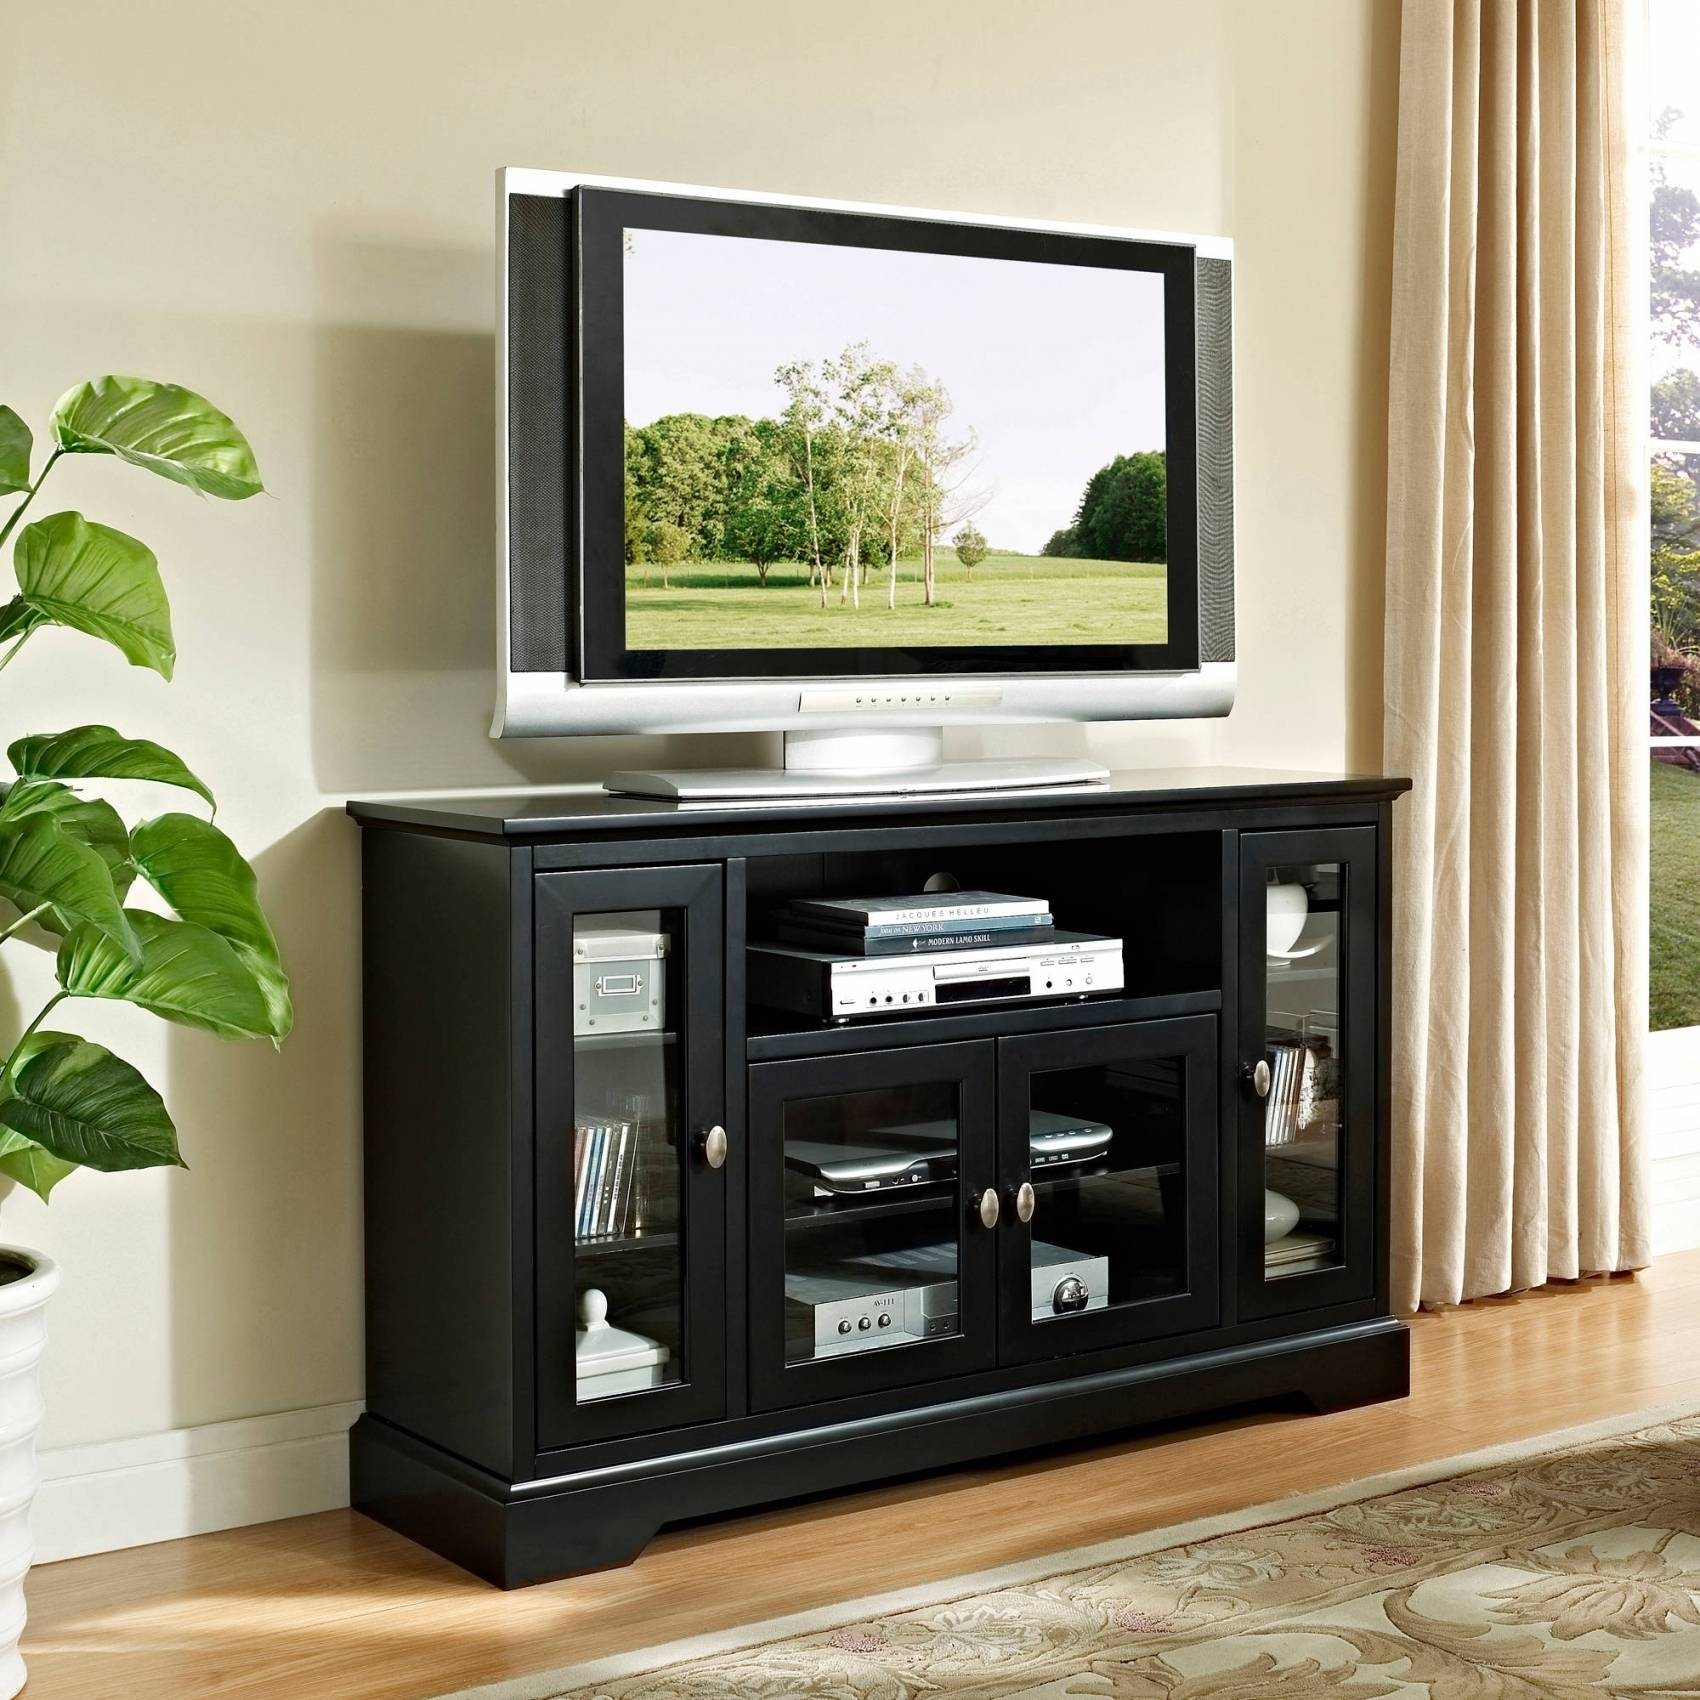 Modern Tv Stands For 55 Inch Flat Screen Tv Inspirational With Regard To Corner Tv Stands For 55 Inch Tv (View 9 of 15)